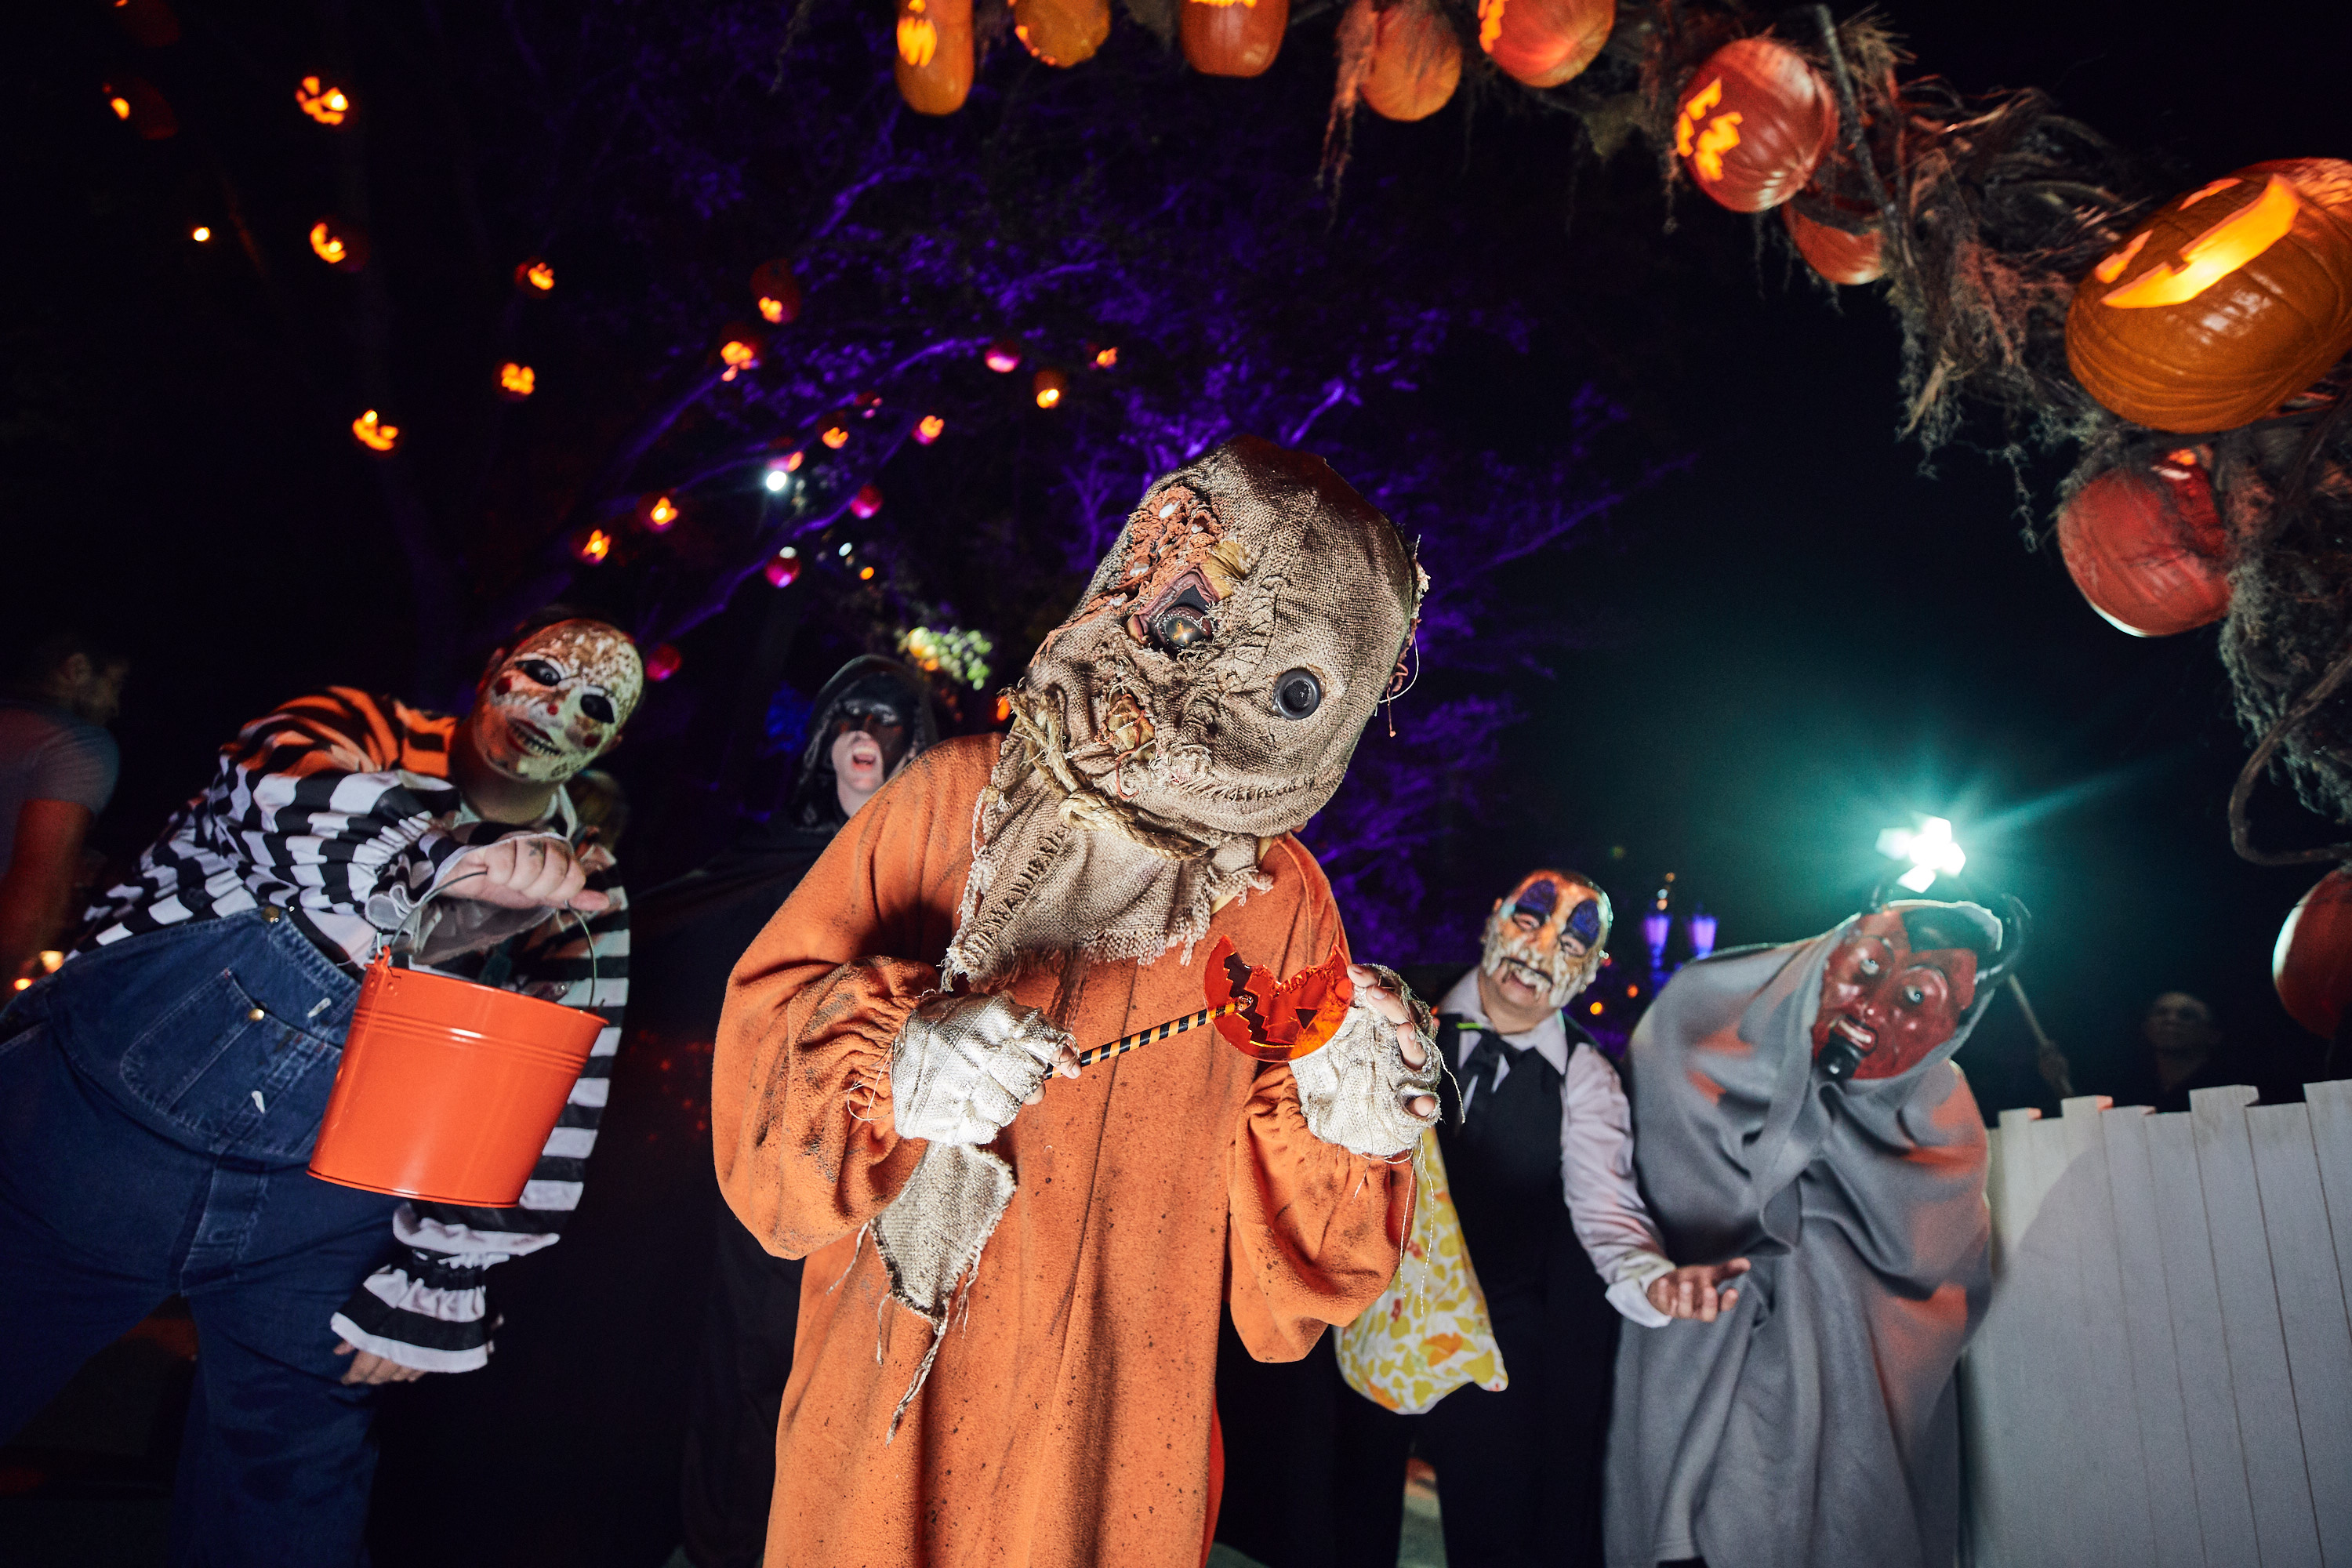 Trick or treat Scarezone at Universal Orlando